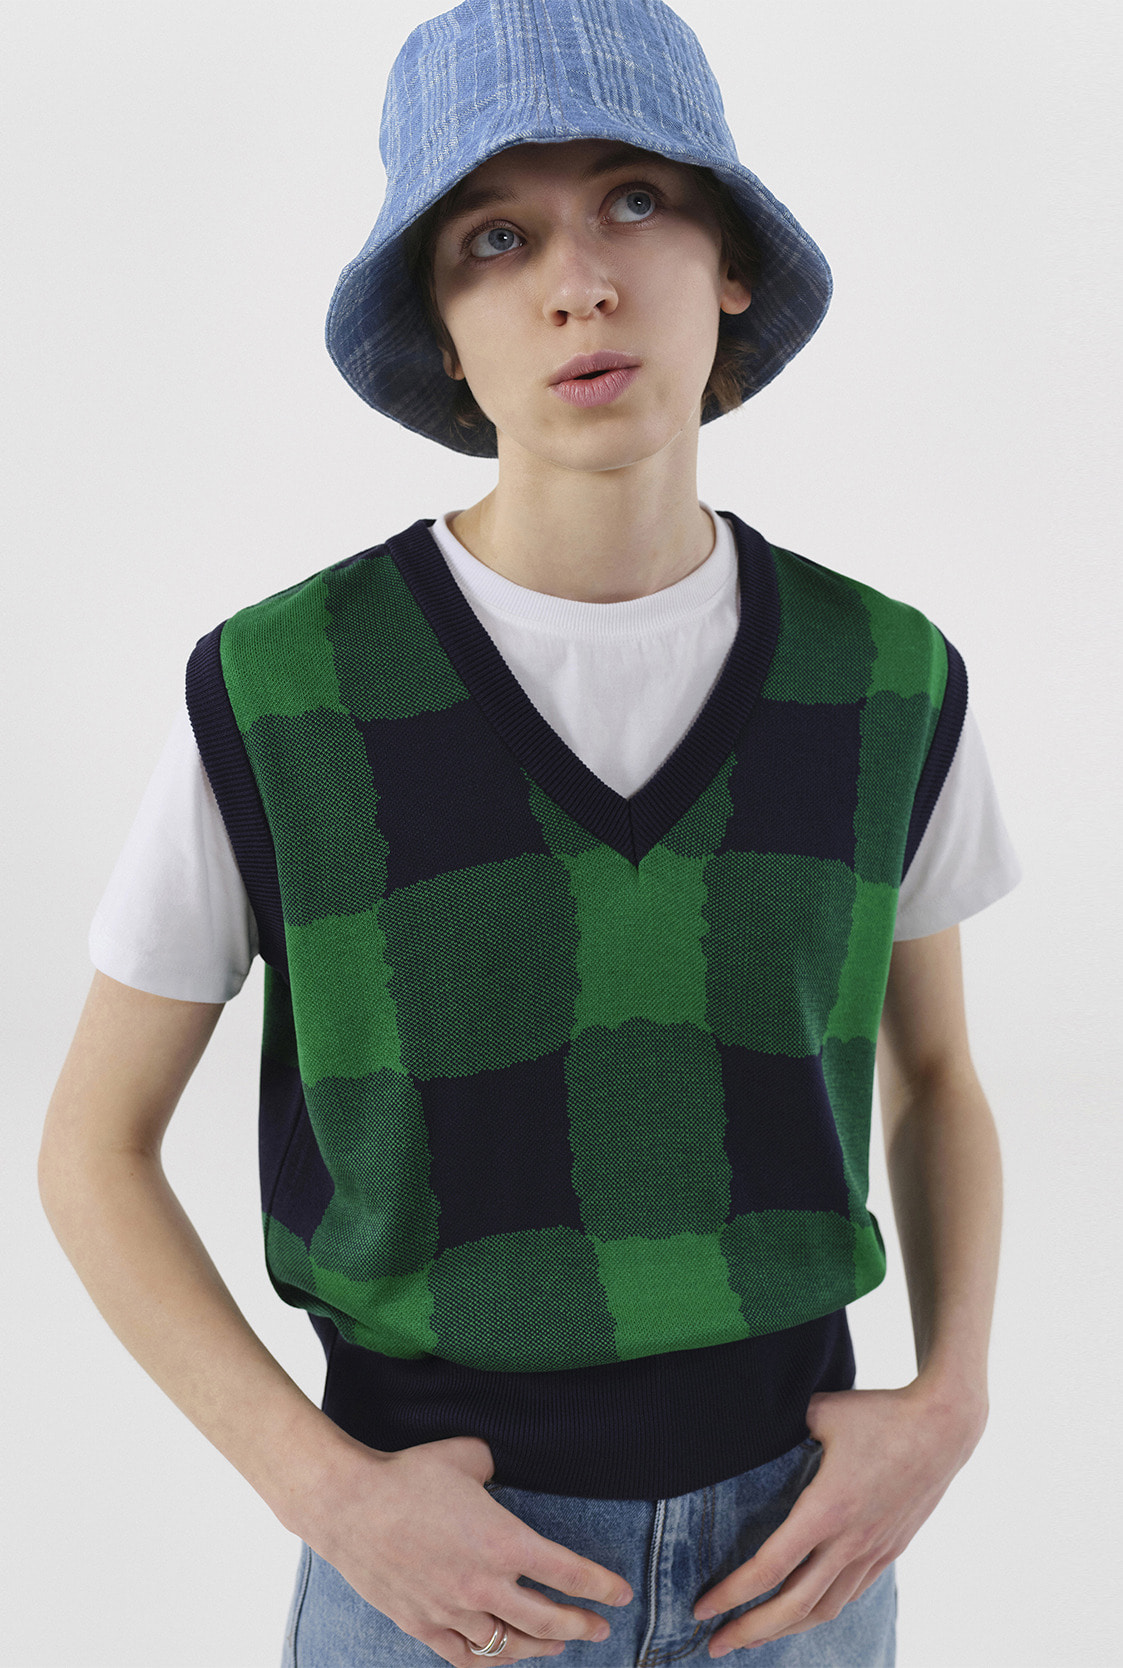 R GINGHAM CHECK KNIT VEST_NAVY